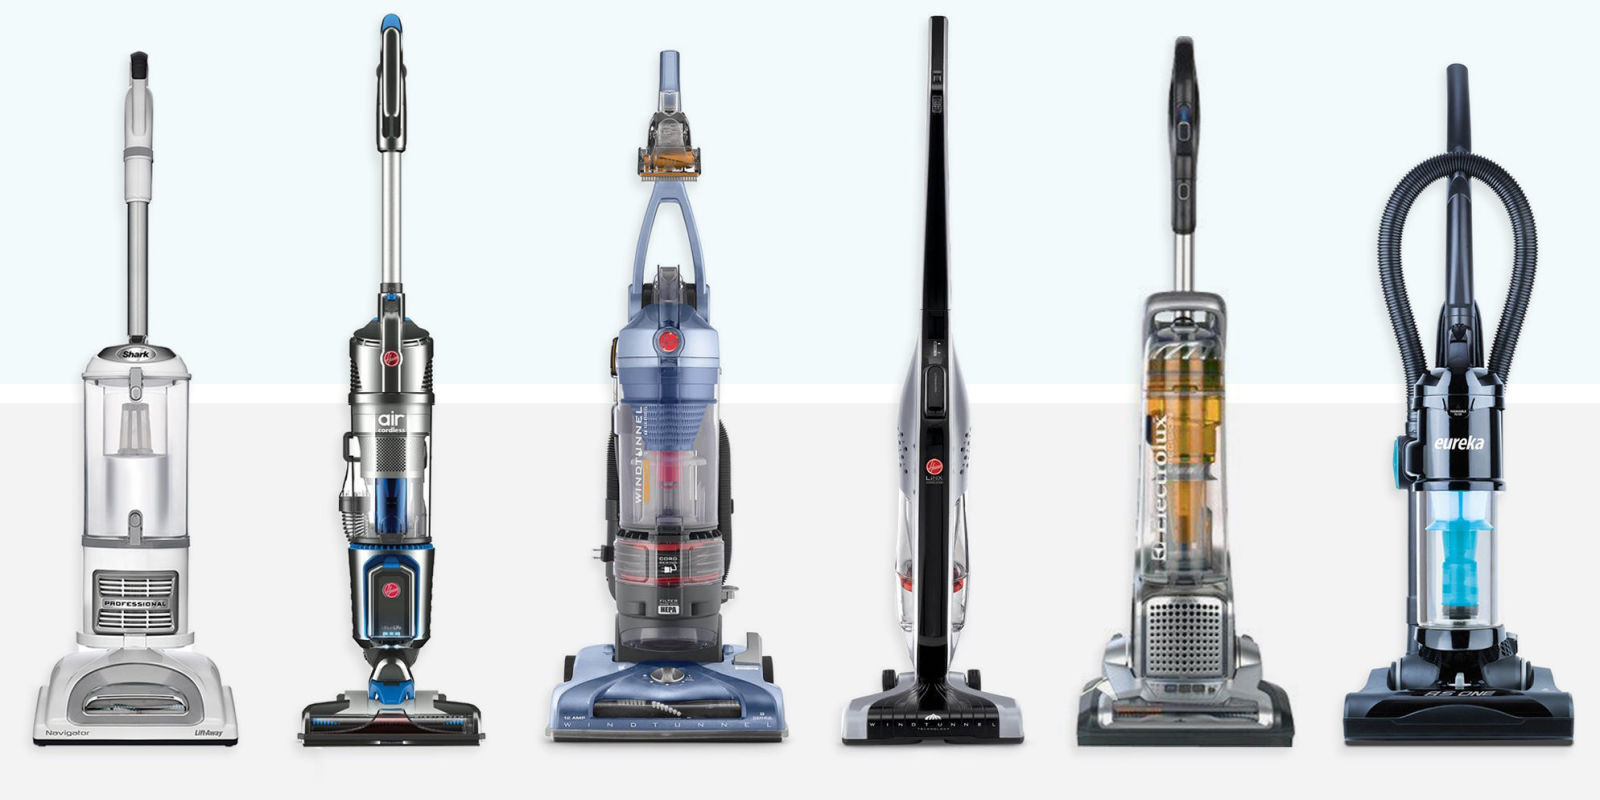 20 Best Vacuum Cleaners In 2017 Top Dyson Shark